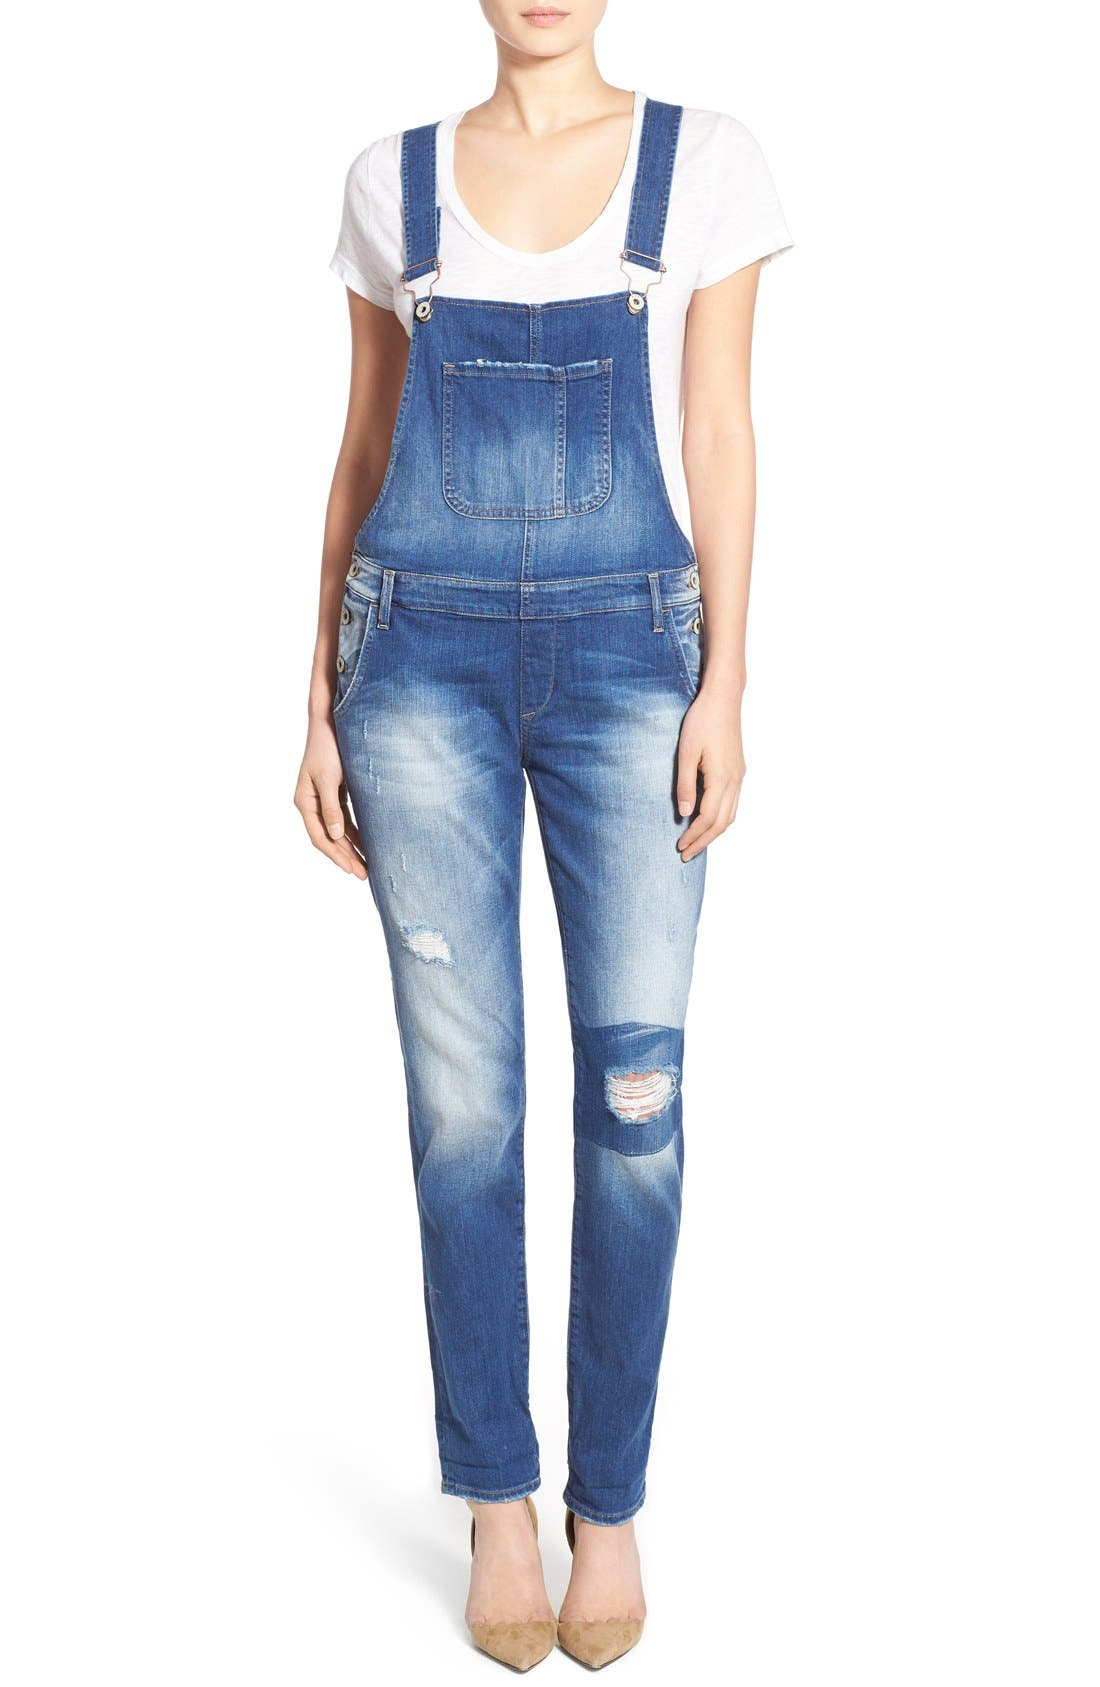 Alternate Image 1 Selected - Mavi Jeans 'Edera' Ripped Overalls (Patch Ripped)